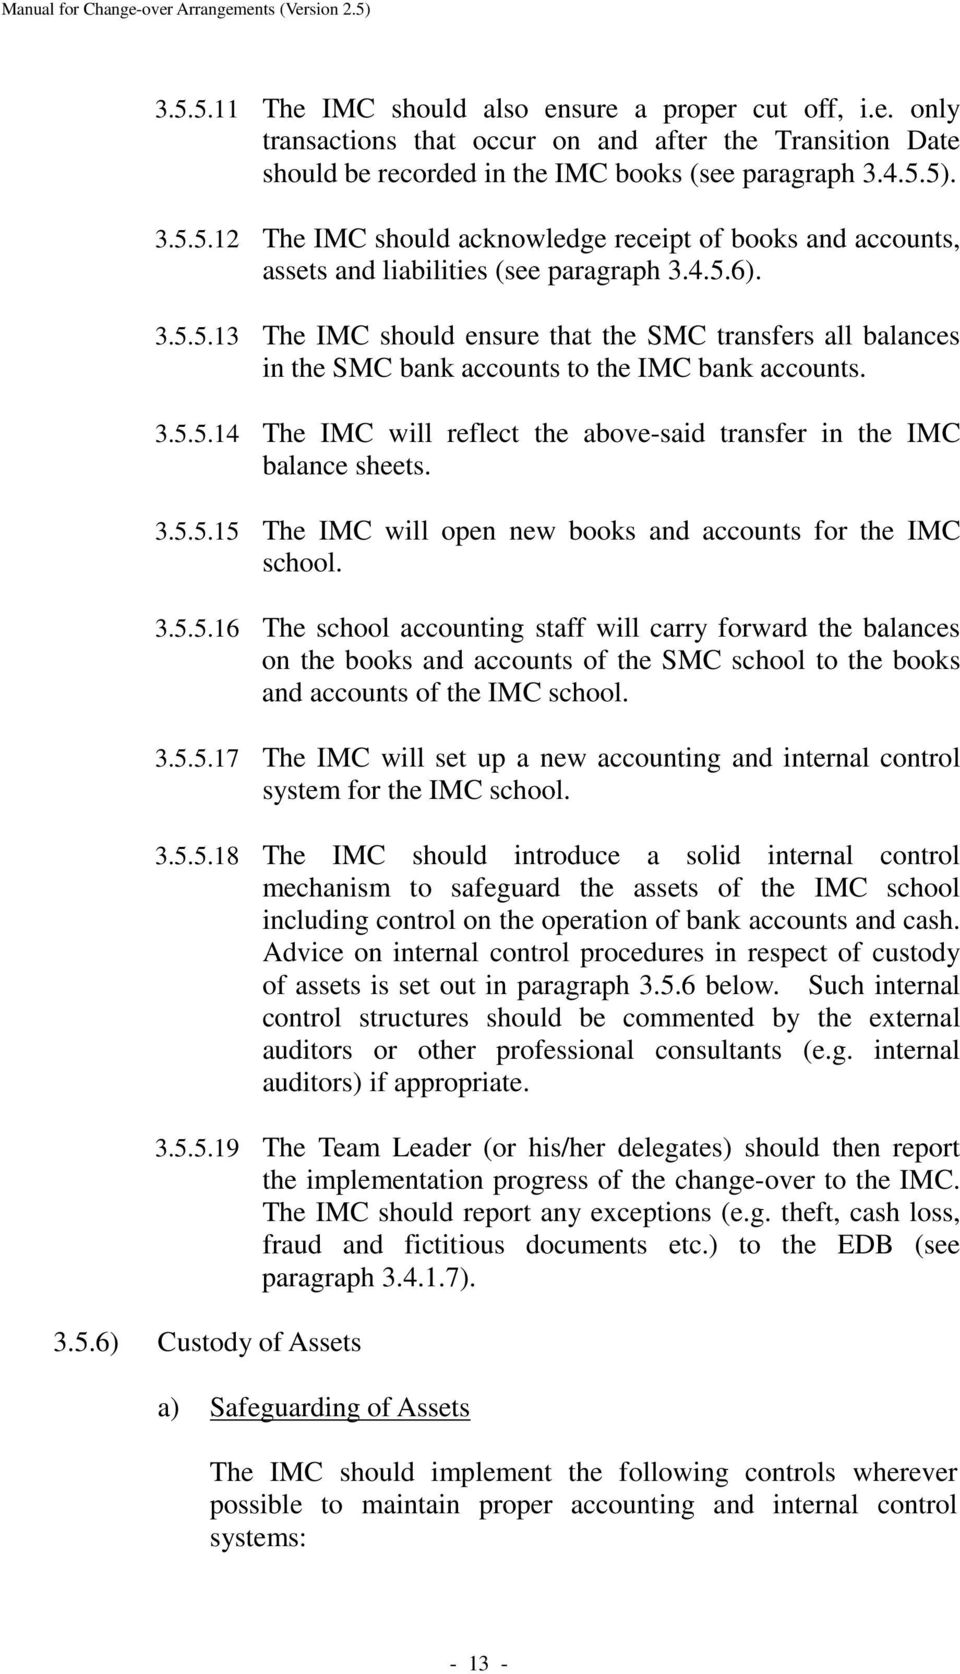 3.5.5.15 The IMC will open new books and accounts for the IMC school. 3.5.5.16 The school accounting staff will carry forward the balances on the books and accounts of the SMC school to the books and accounts of the IMC school.